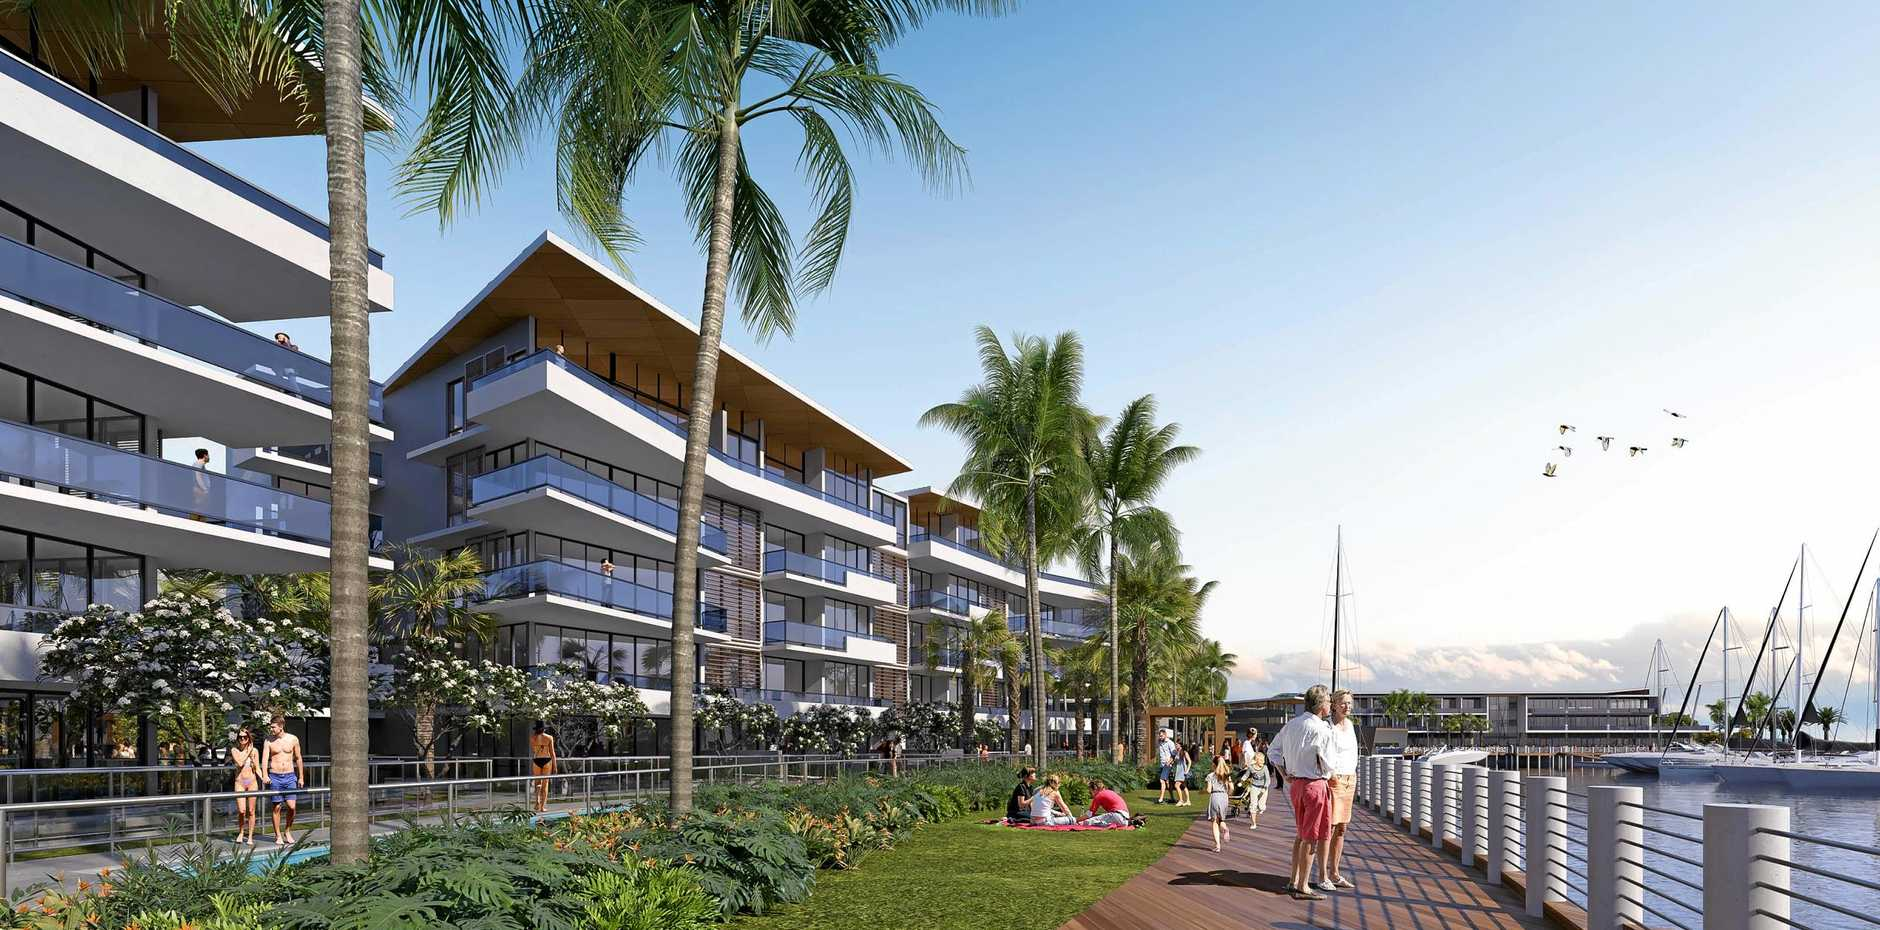 DEVELOPMENT PLANNED: Sydney based BH Developments QLD Pty Ltd (BHD) has officially lodged a development application with Bundaberg Regional Council for a integrated marina and resort project, set to transform the coastal town of Burnett Heads into a vibrant tourism, lifestyle and leisure precinct.